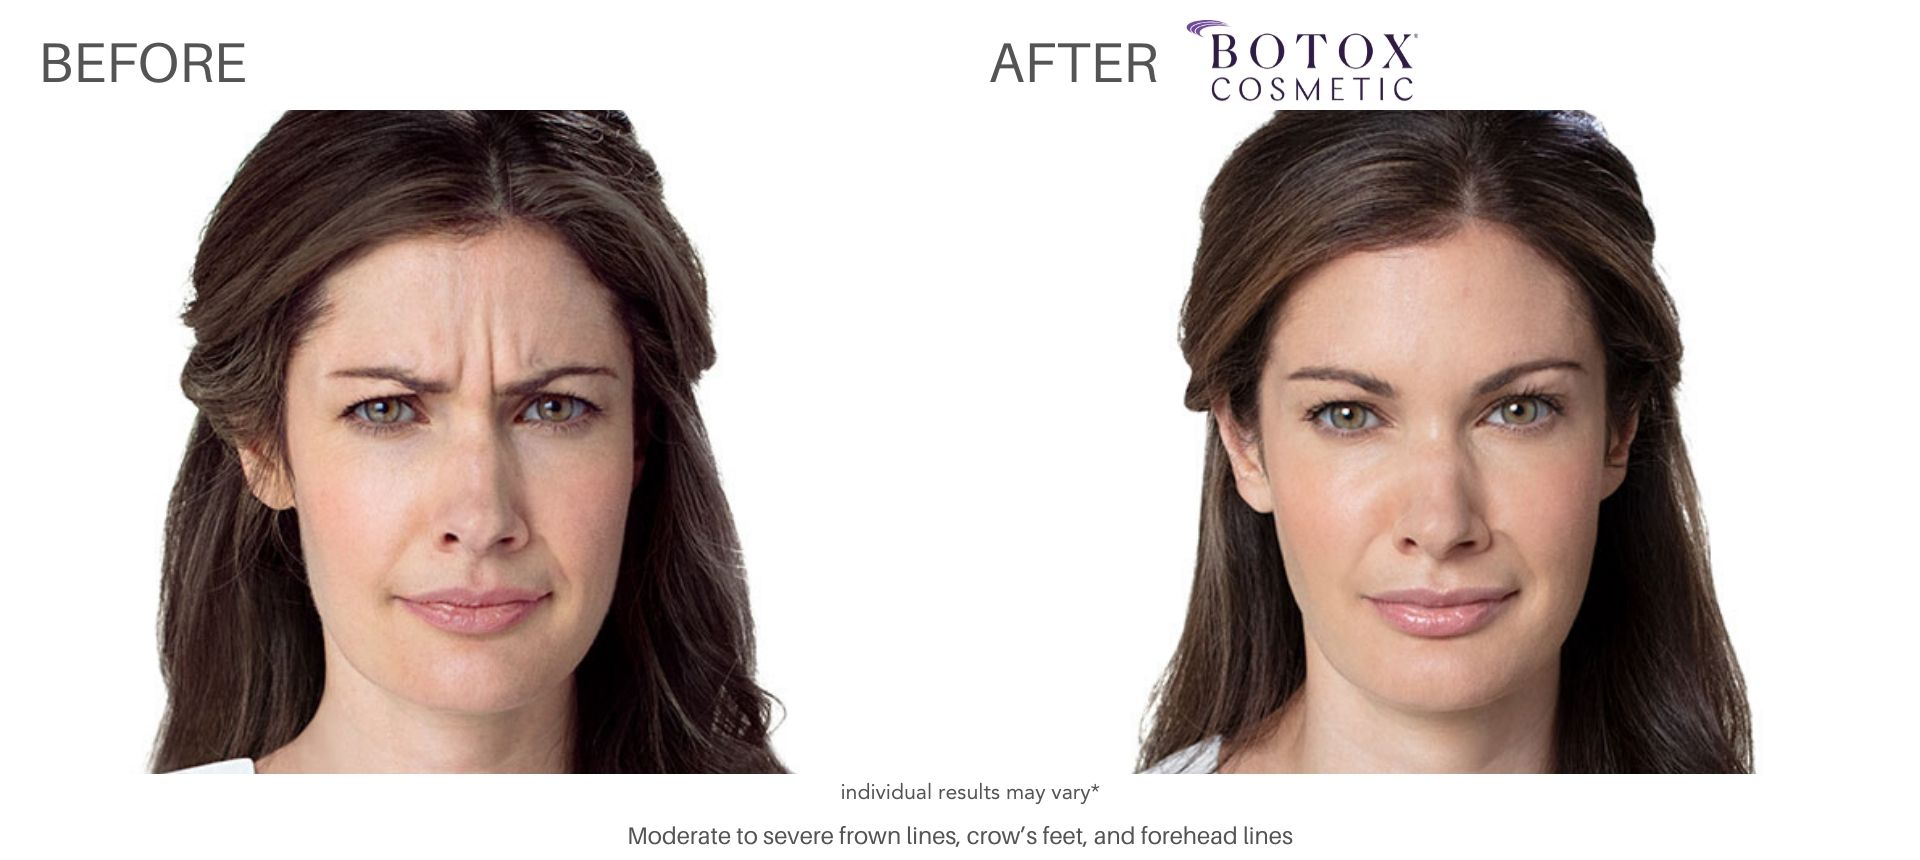 Botox before and after 1